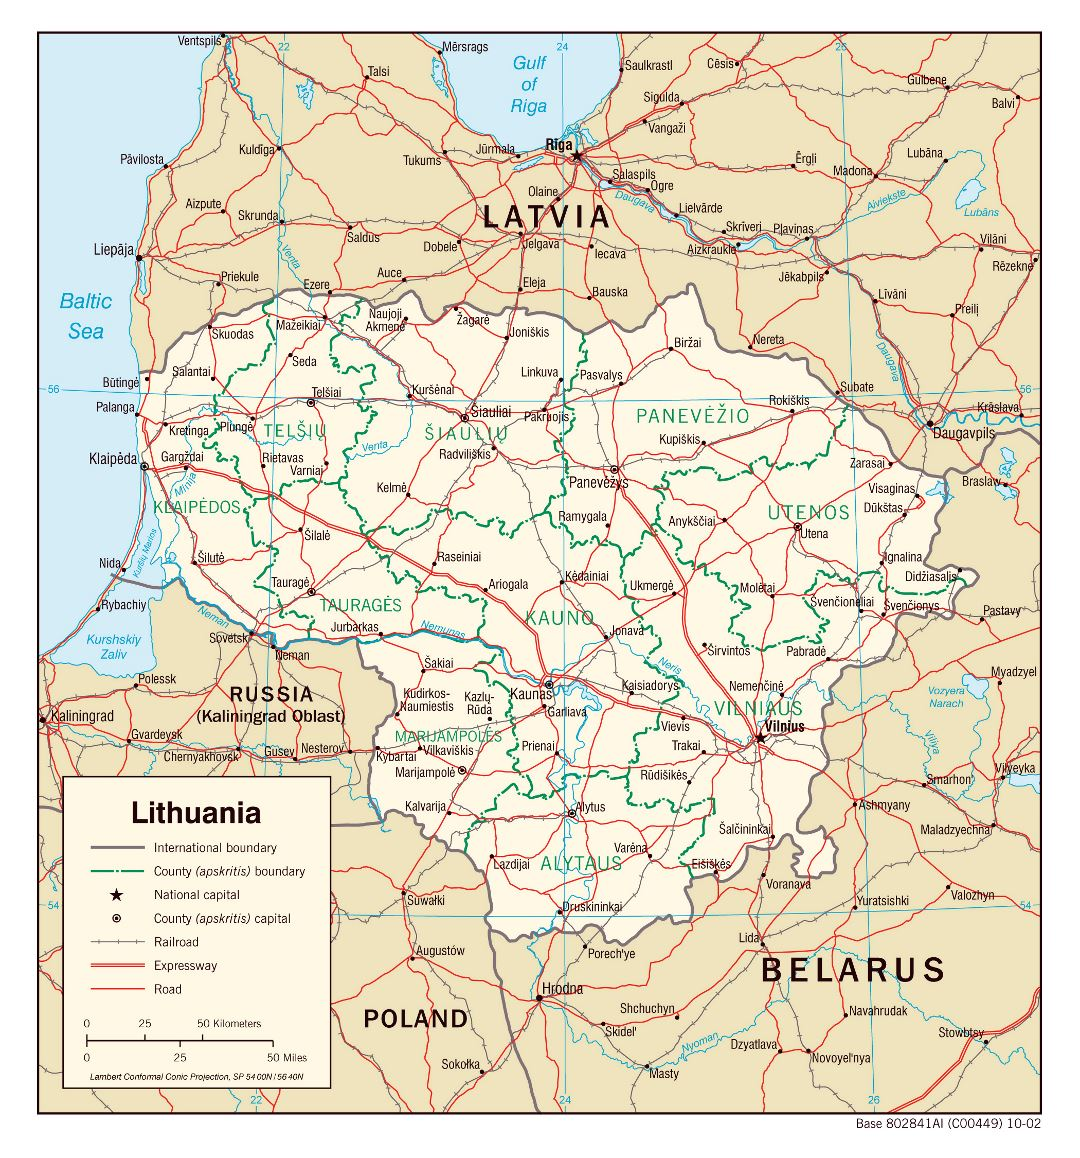 Large scale political and administrative map of Lithuania with roads, railroads and major cities - 2002